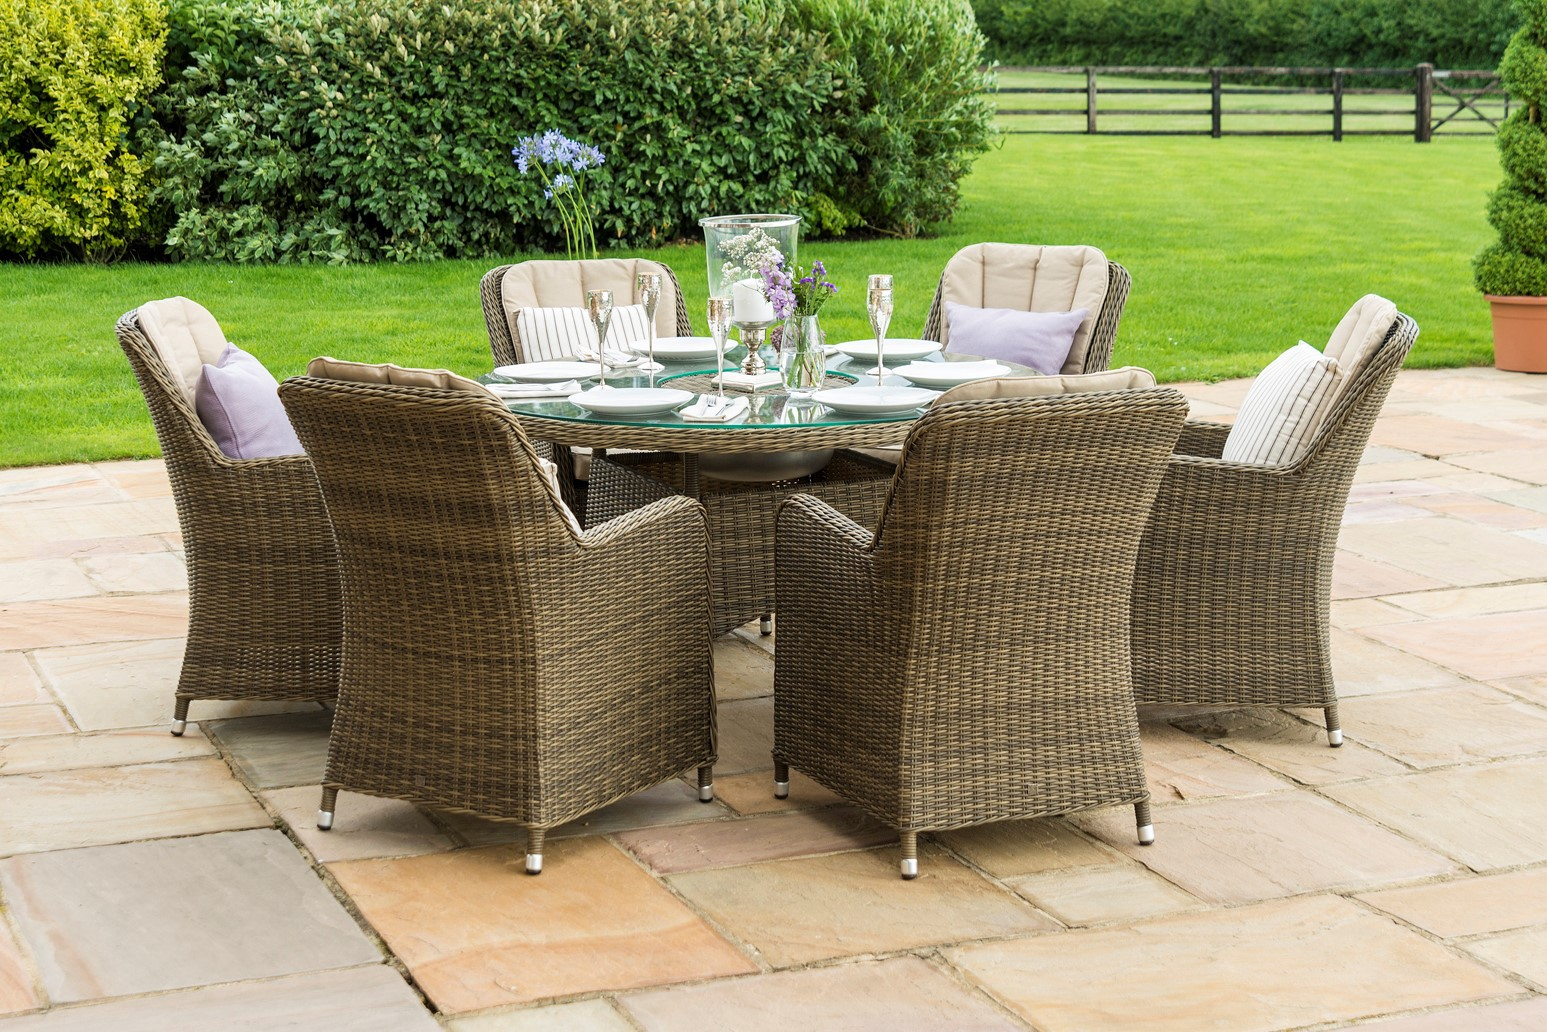 Winchester 6 Seat Round Ice Bucket With Venice Chairs and Lazy Susan & https://www.rattanfurniturefairy.co.uk/maze-rattan-winchester-6-seat ...